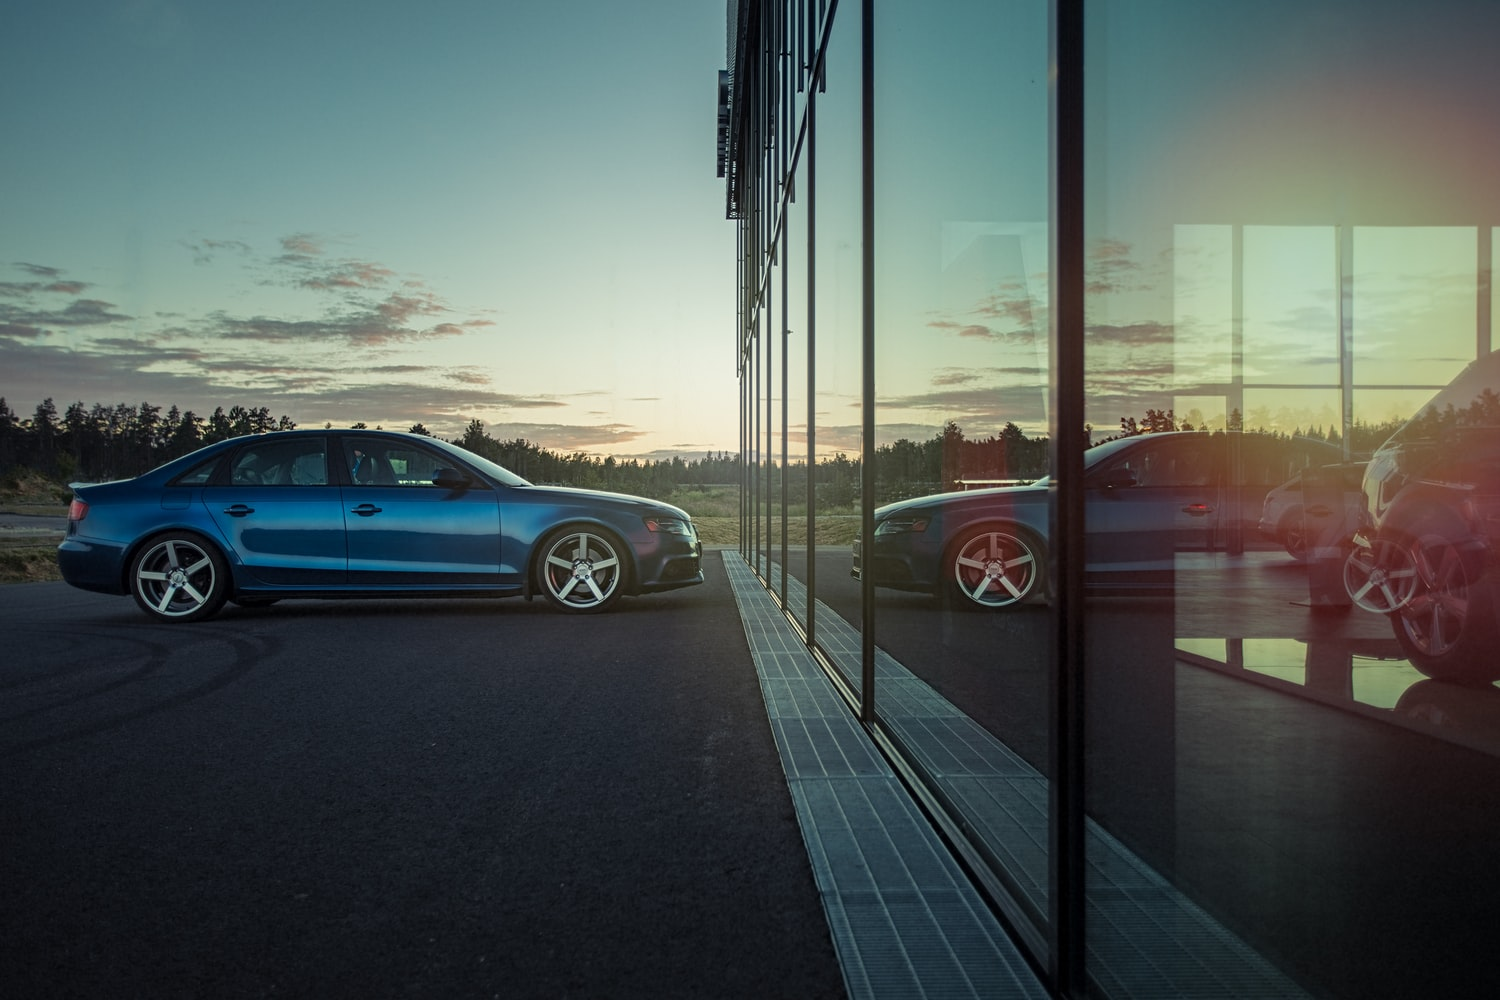 Audi A4 in front of a mirrored window.